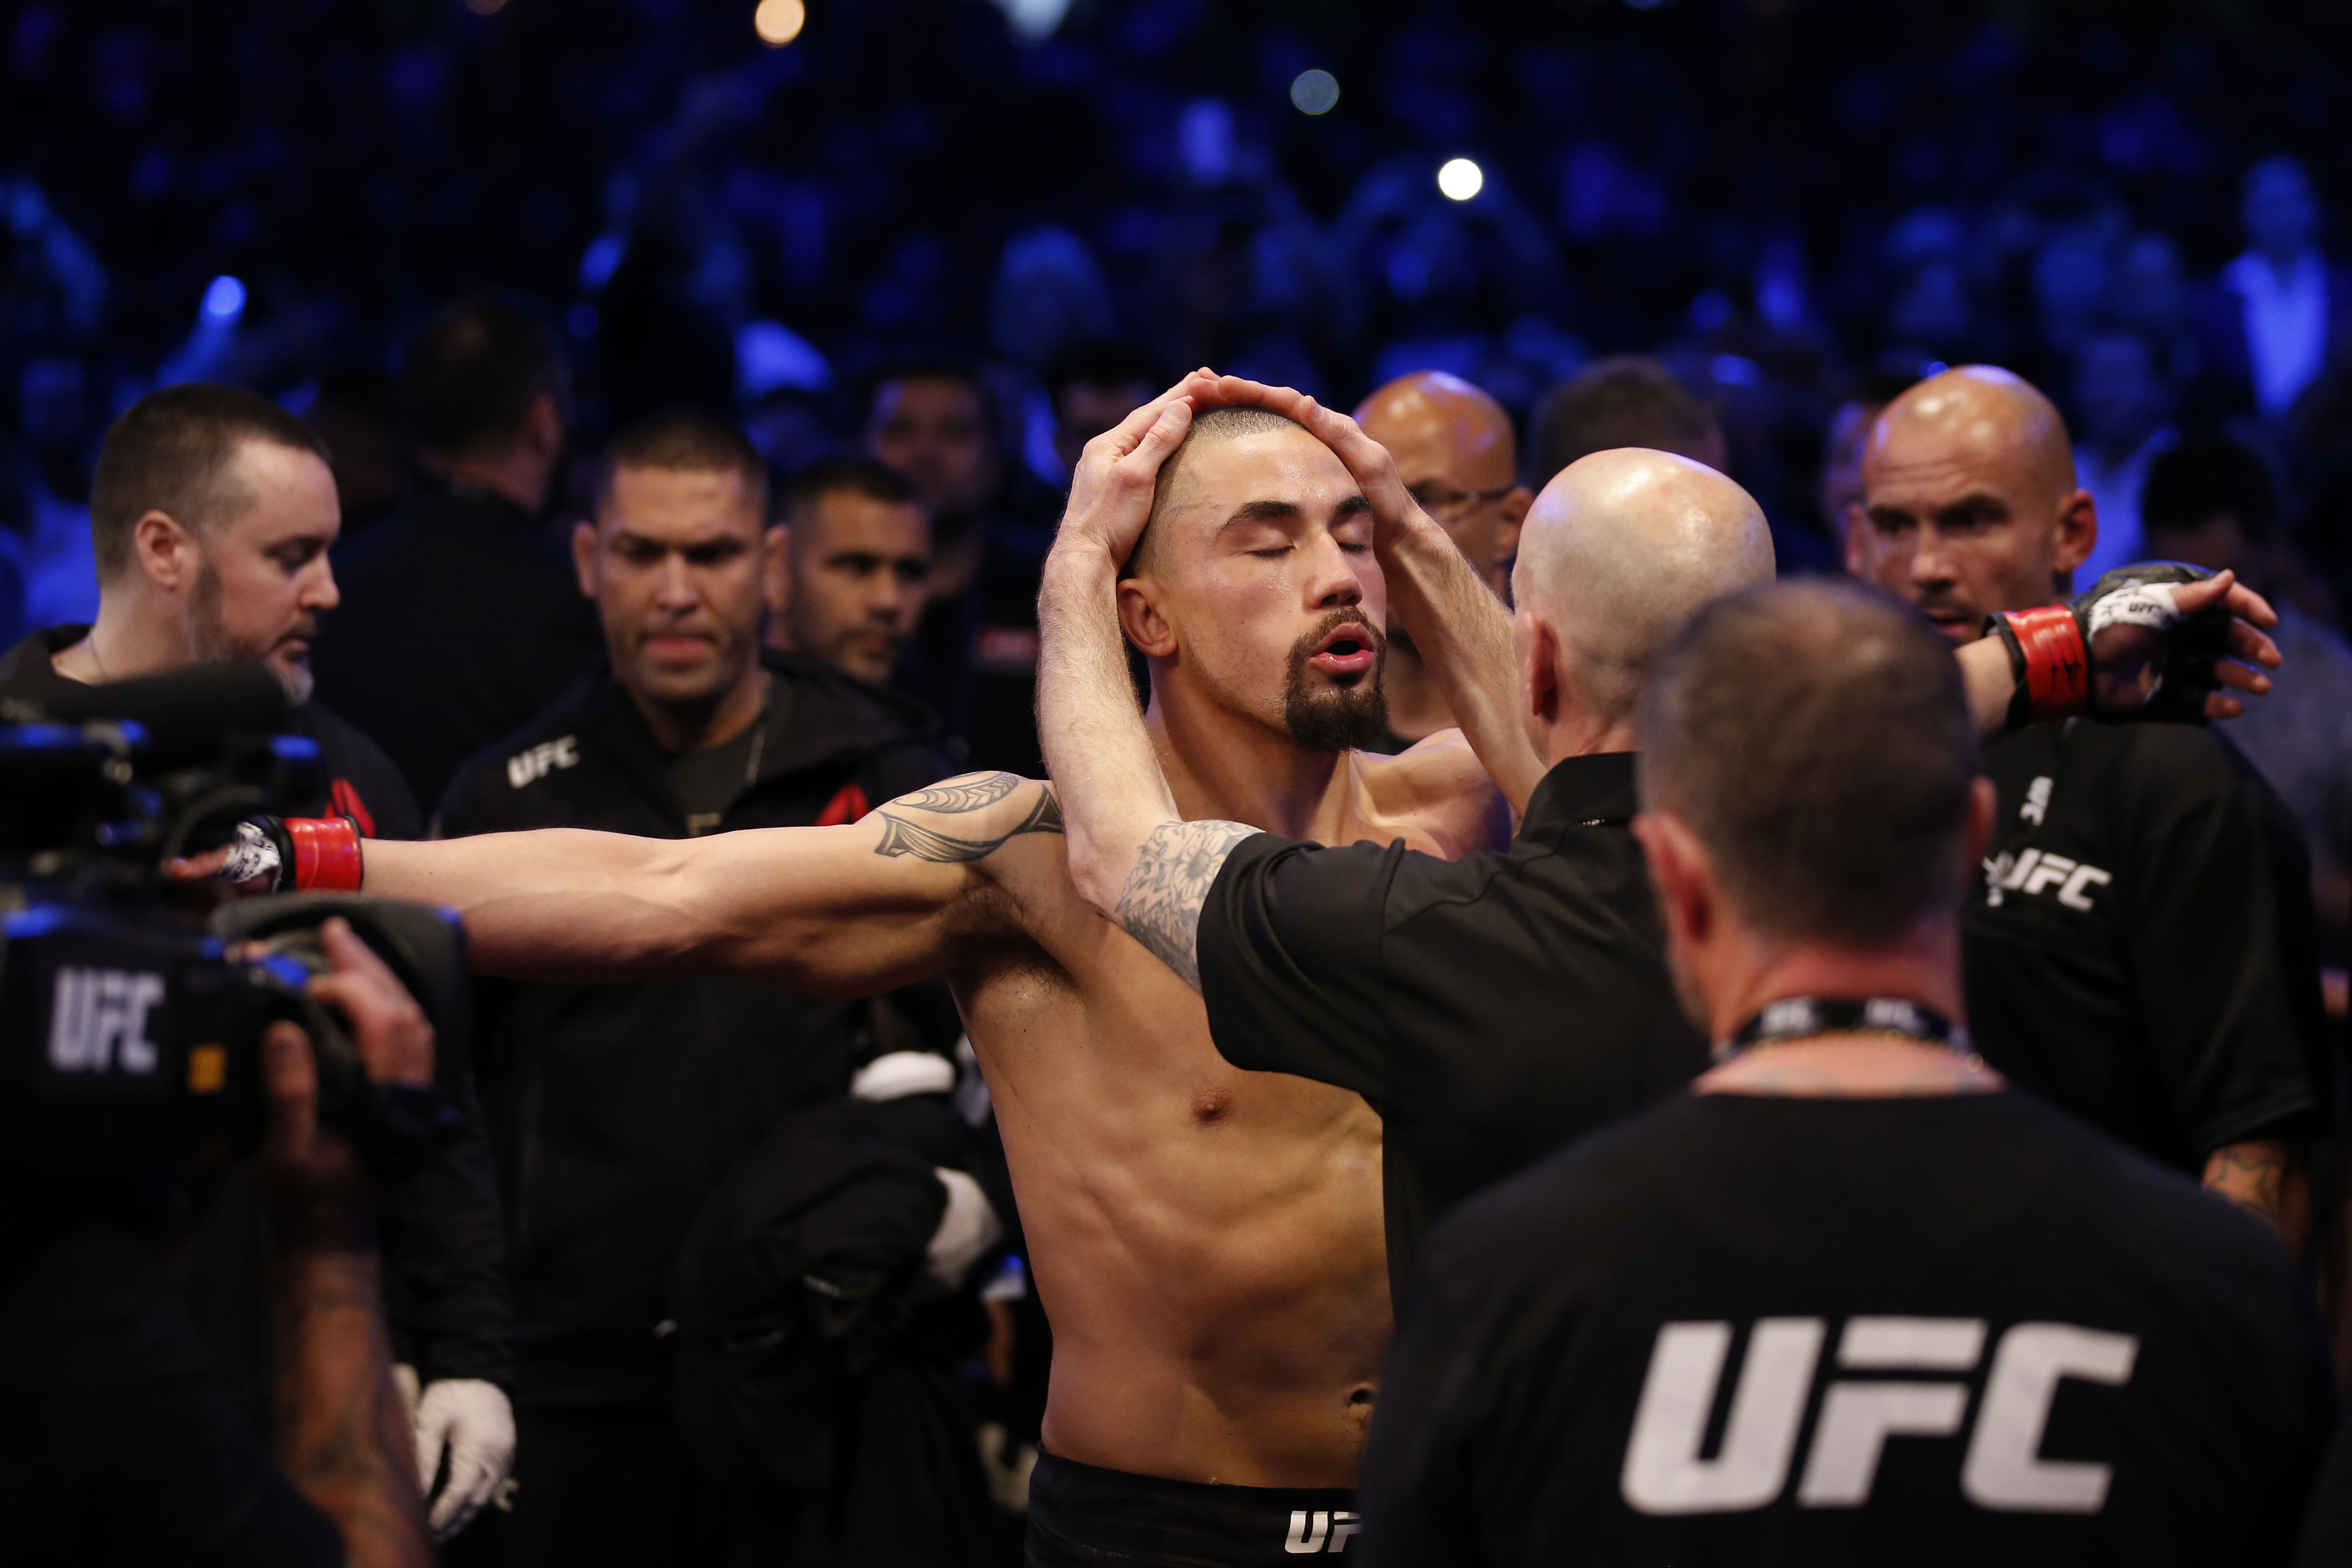 Why UFC Fighter Robert Whittaker Refuses to Trash Talk His Opponents